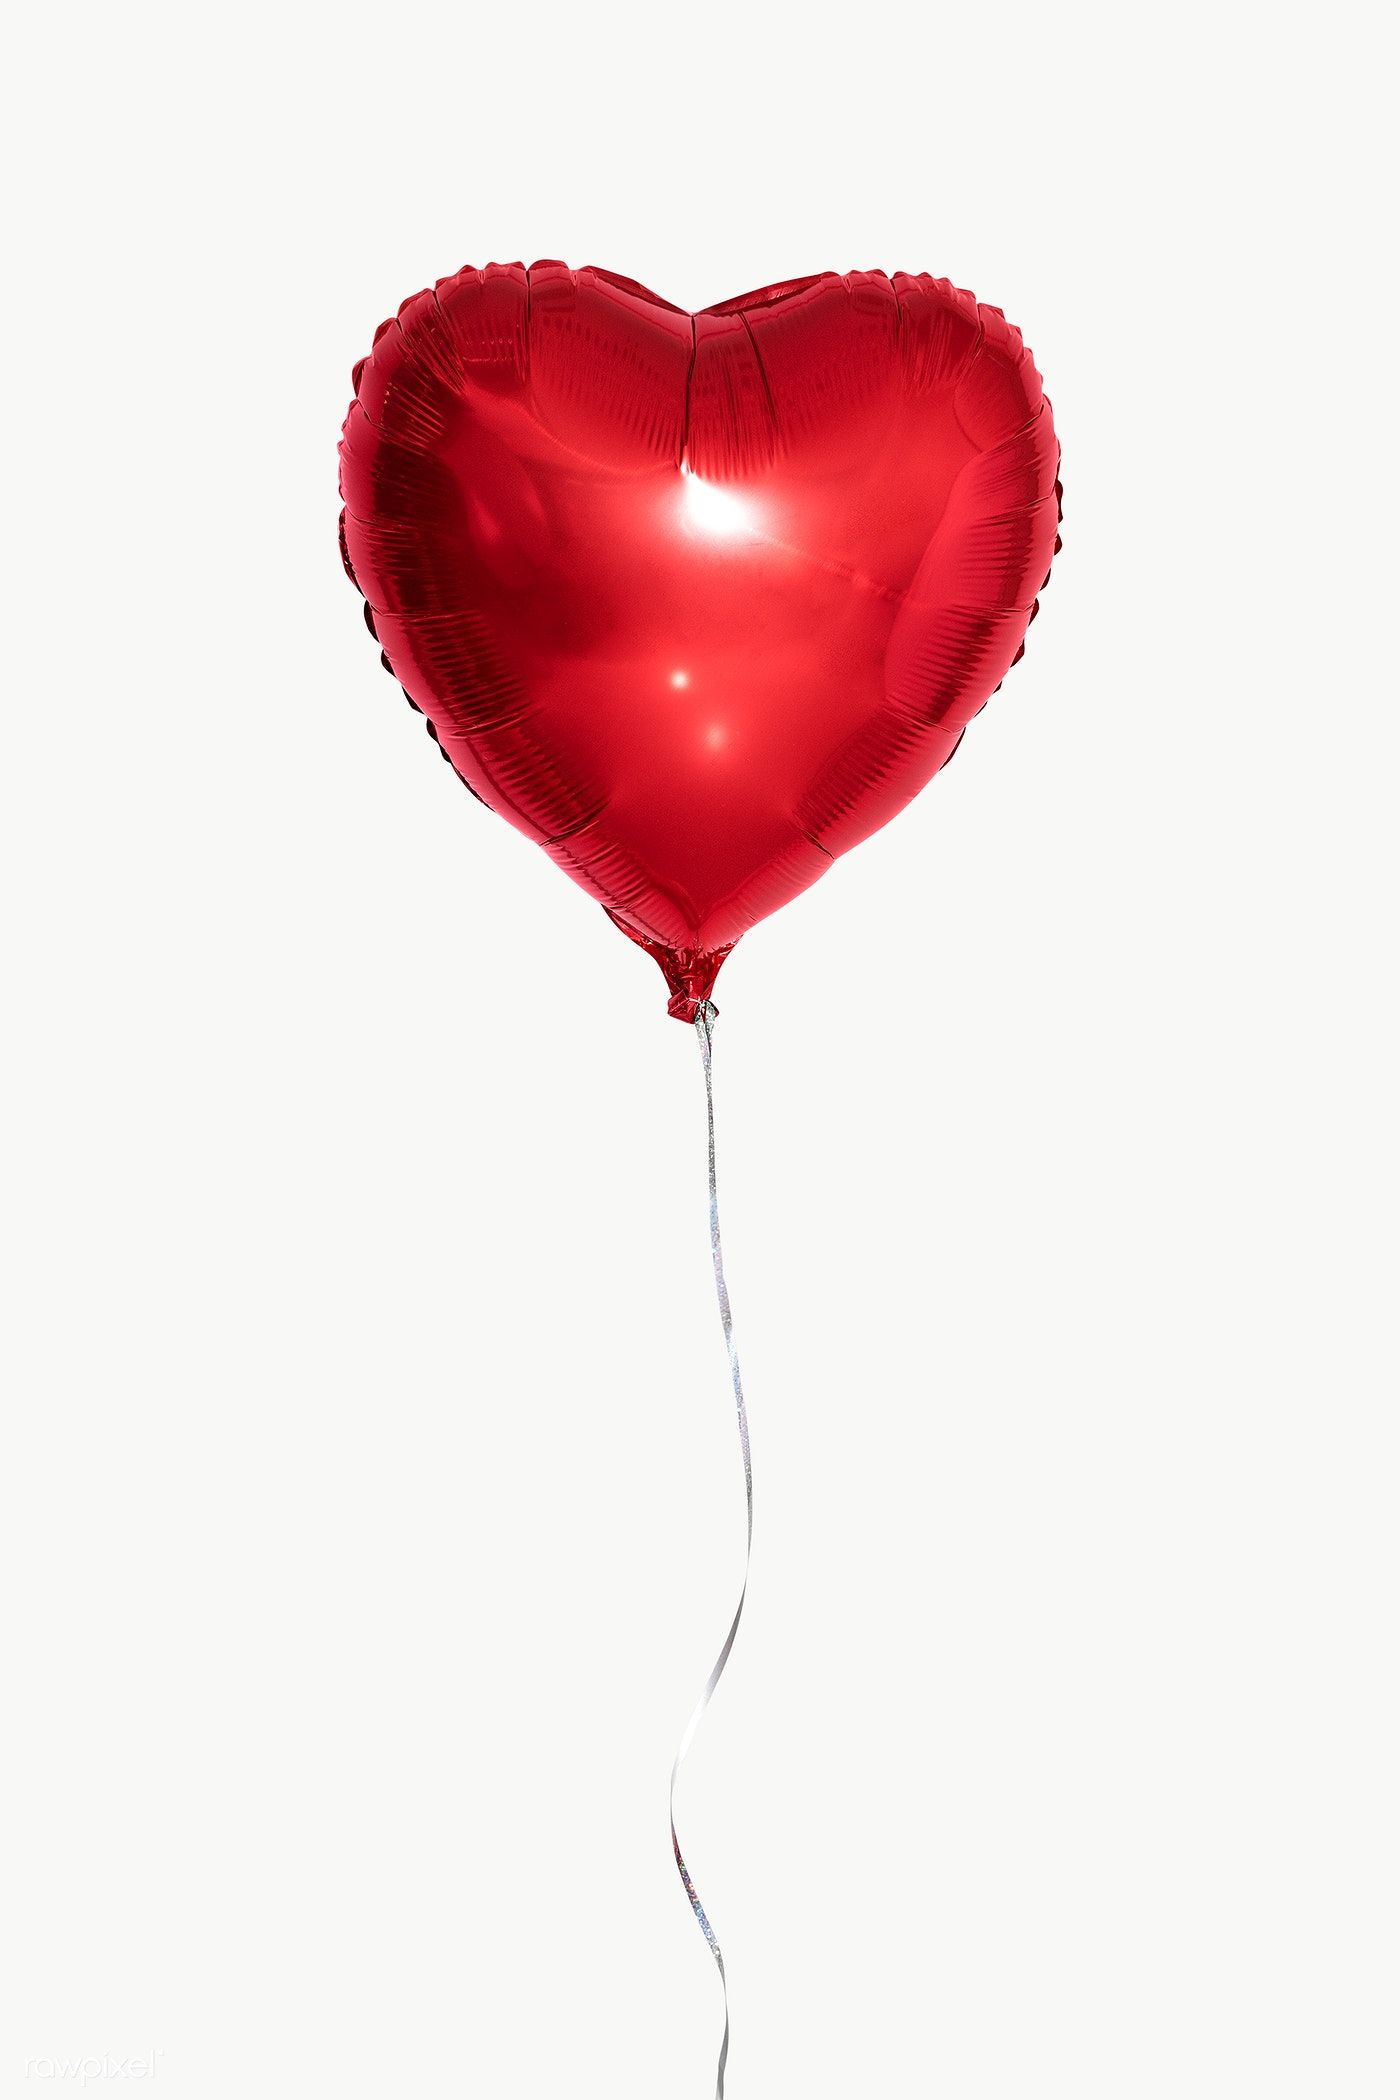 Red Heart Balloon Transparent Png Premium Image By Rawpixel Com Teddy Rawpixel Heart Balloons Balloons Ballon Drawing